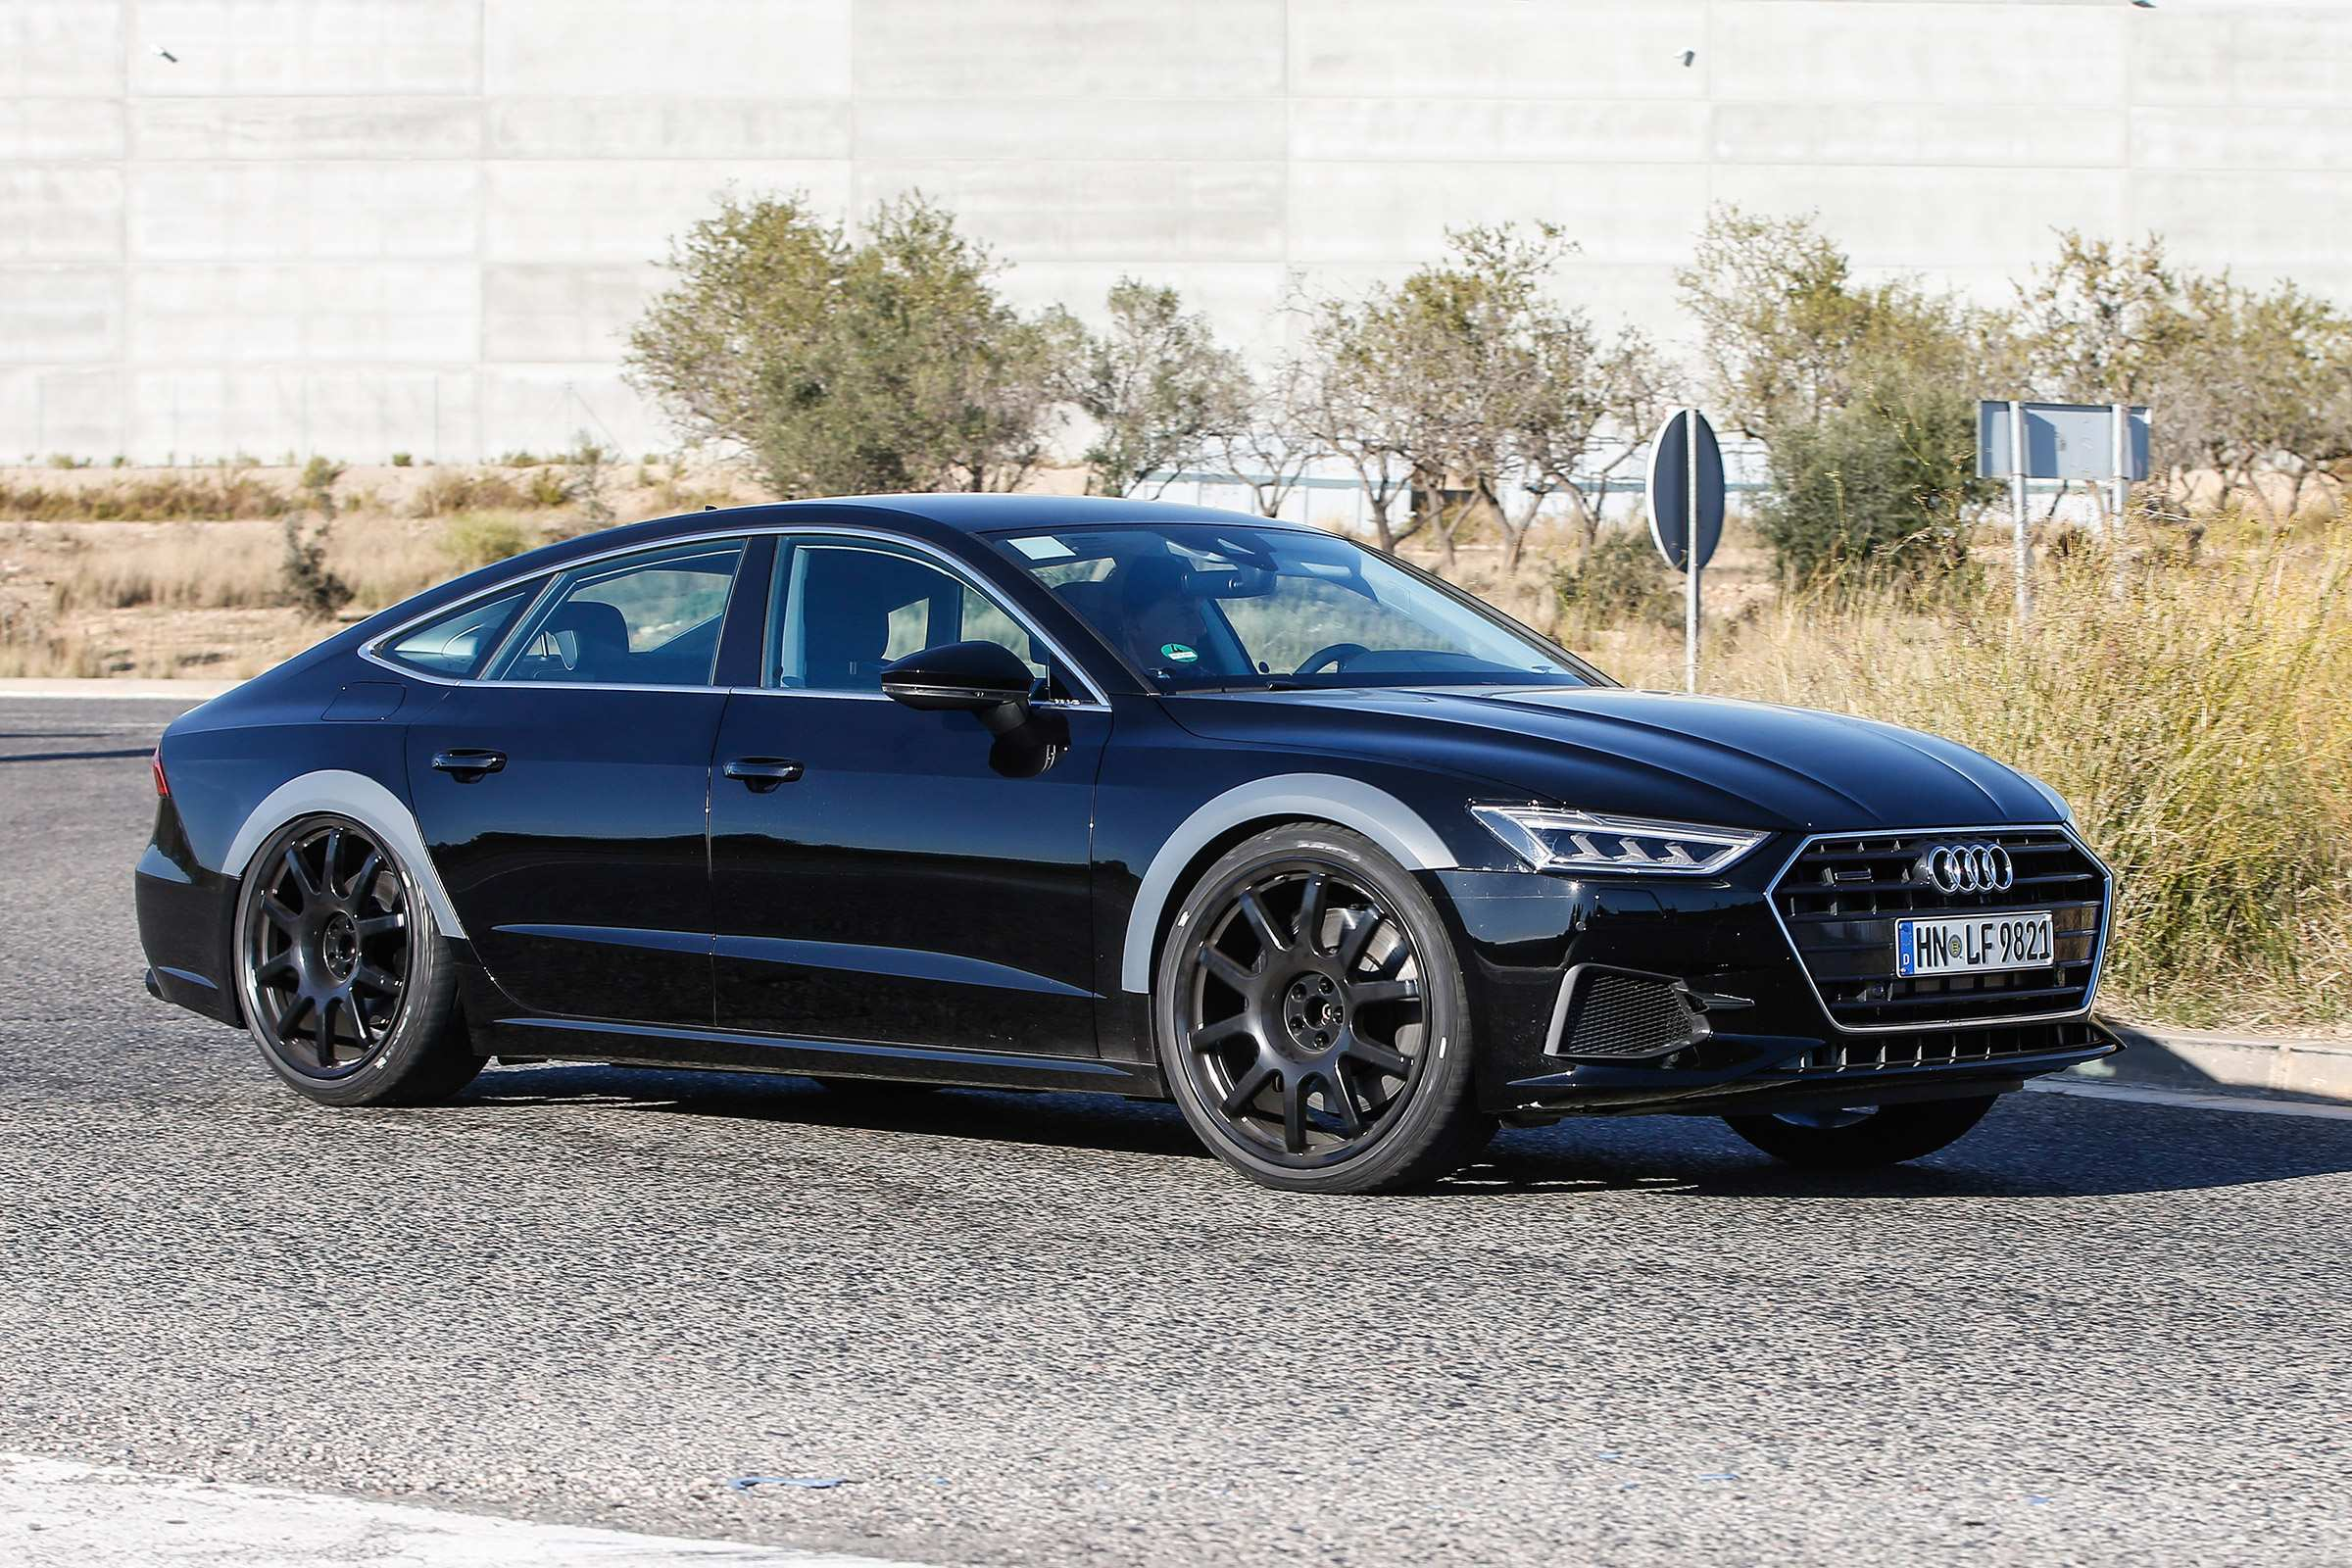 20 Concept of Best 2019 Audi S7 Engine Performance And New Engine Concept by Best 2019 Audi S7 Engine Performance And New Engine